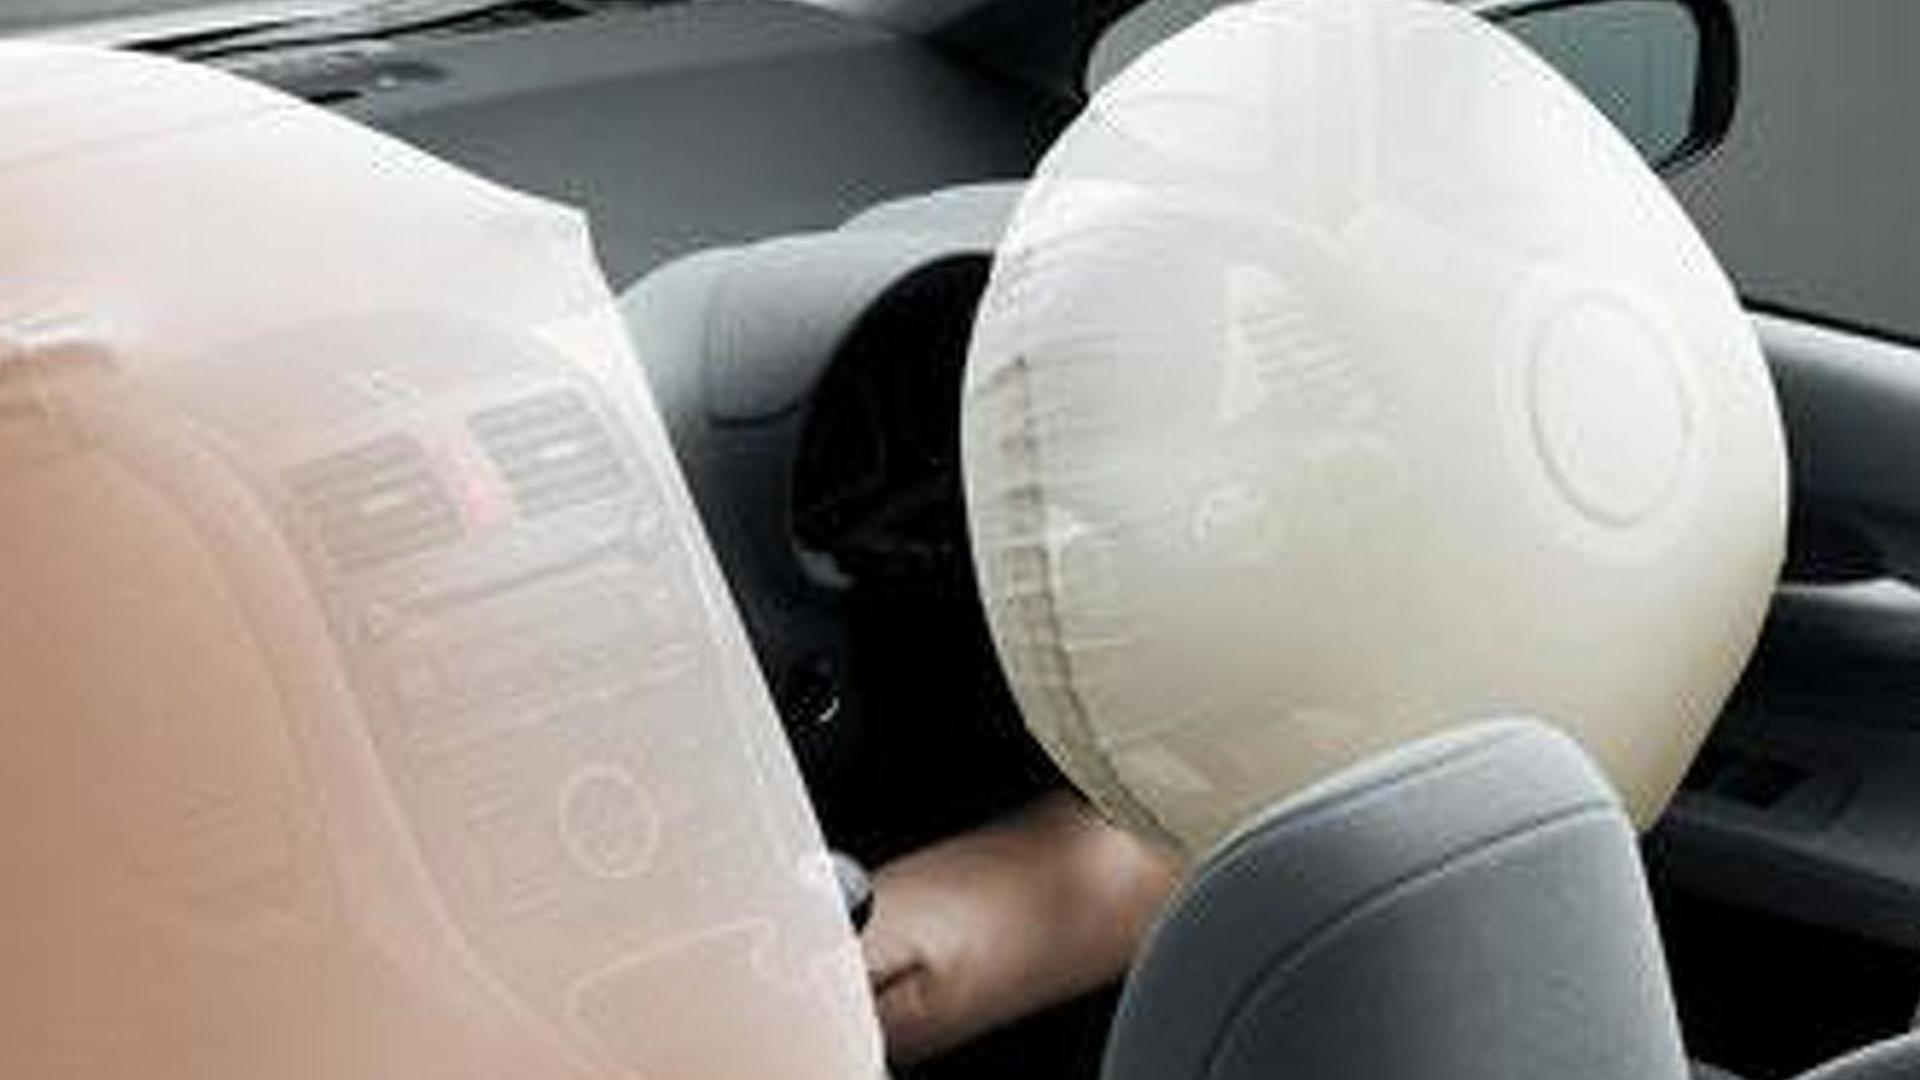 Toyota, Honda and Nissan recall more than two million vehicles for faulty airbags